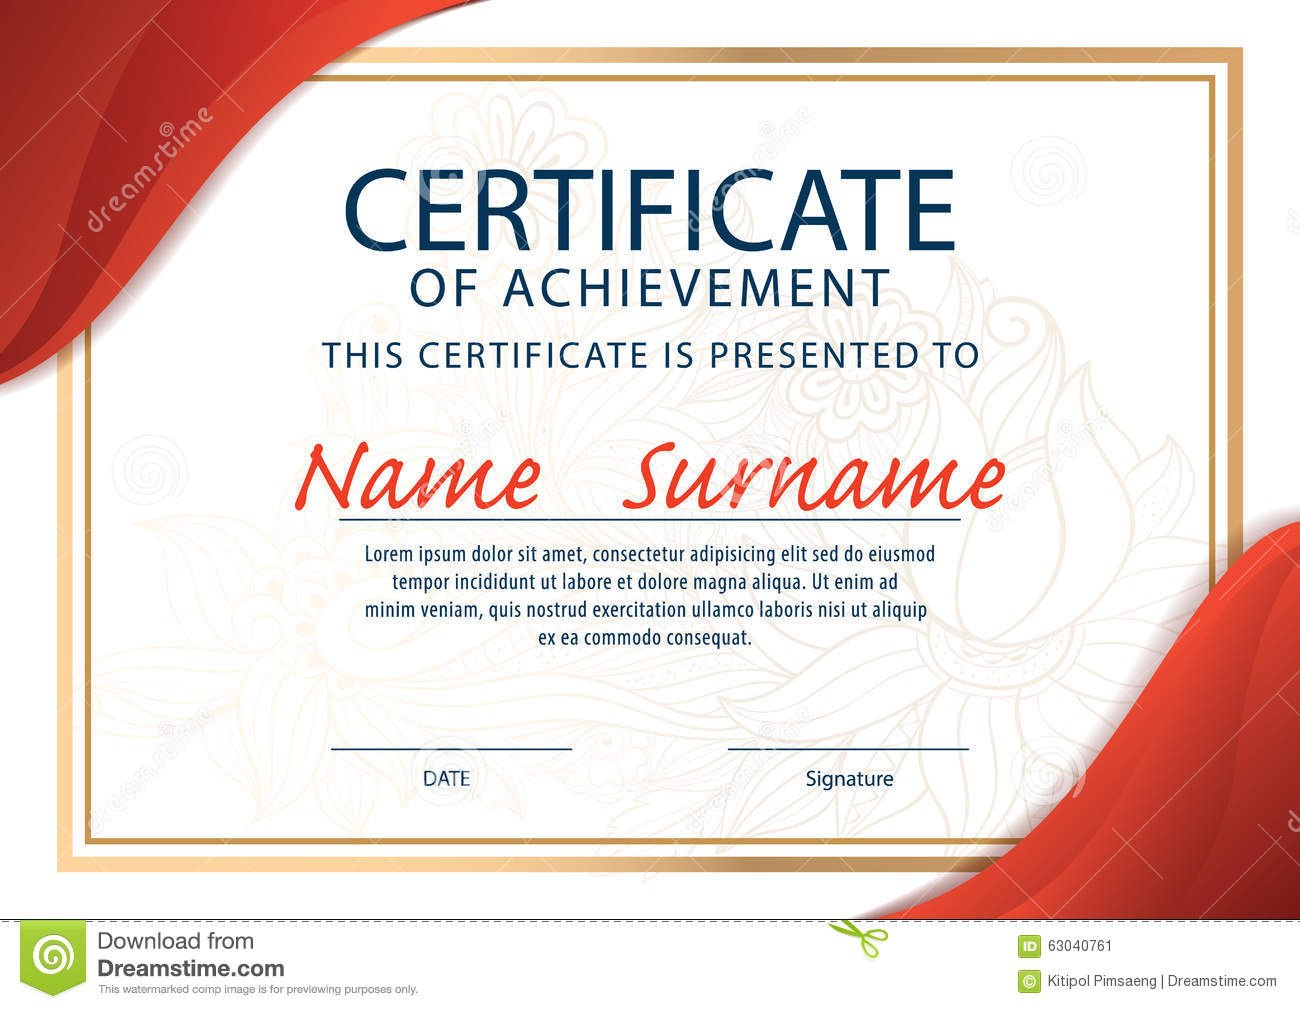 Certificate Templatediploma A Size Stock Vector  Illustration Of With Regard To Certificate Template Size